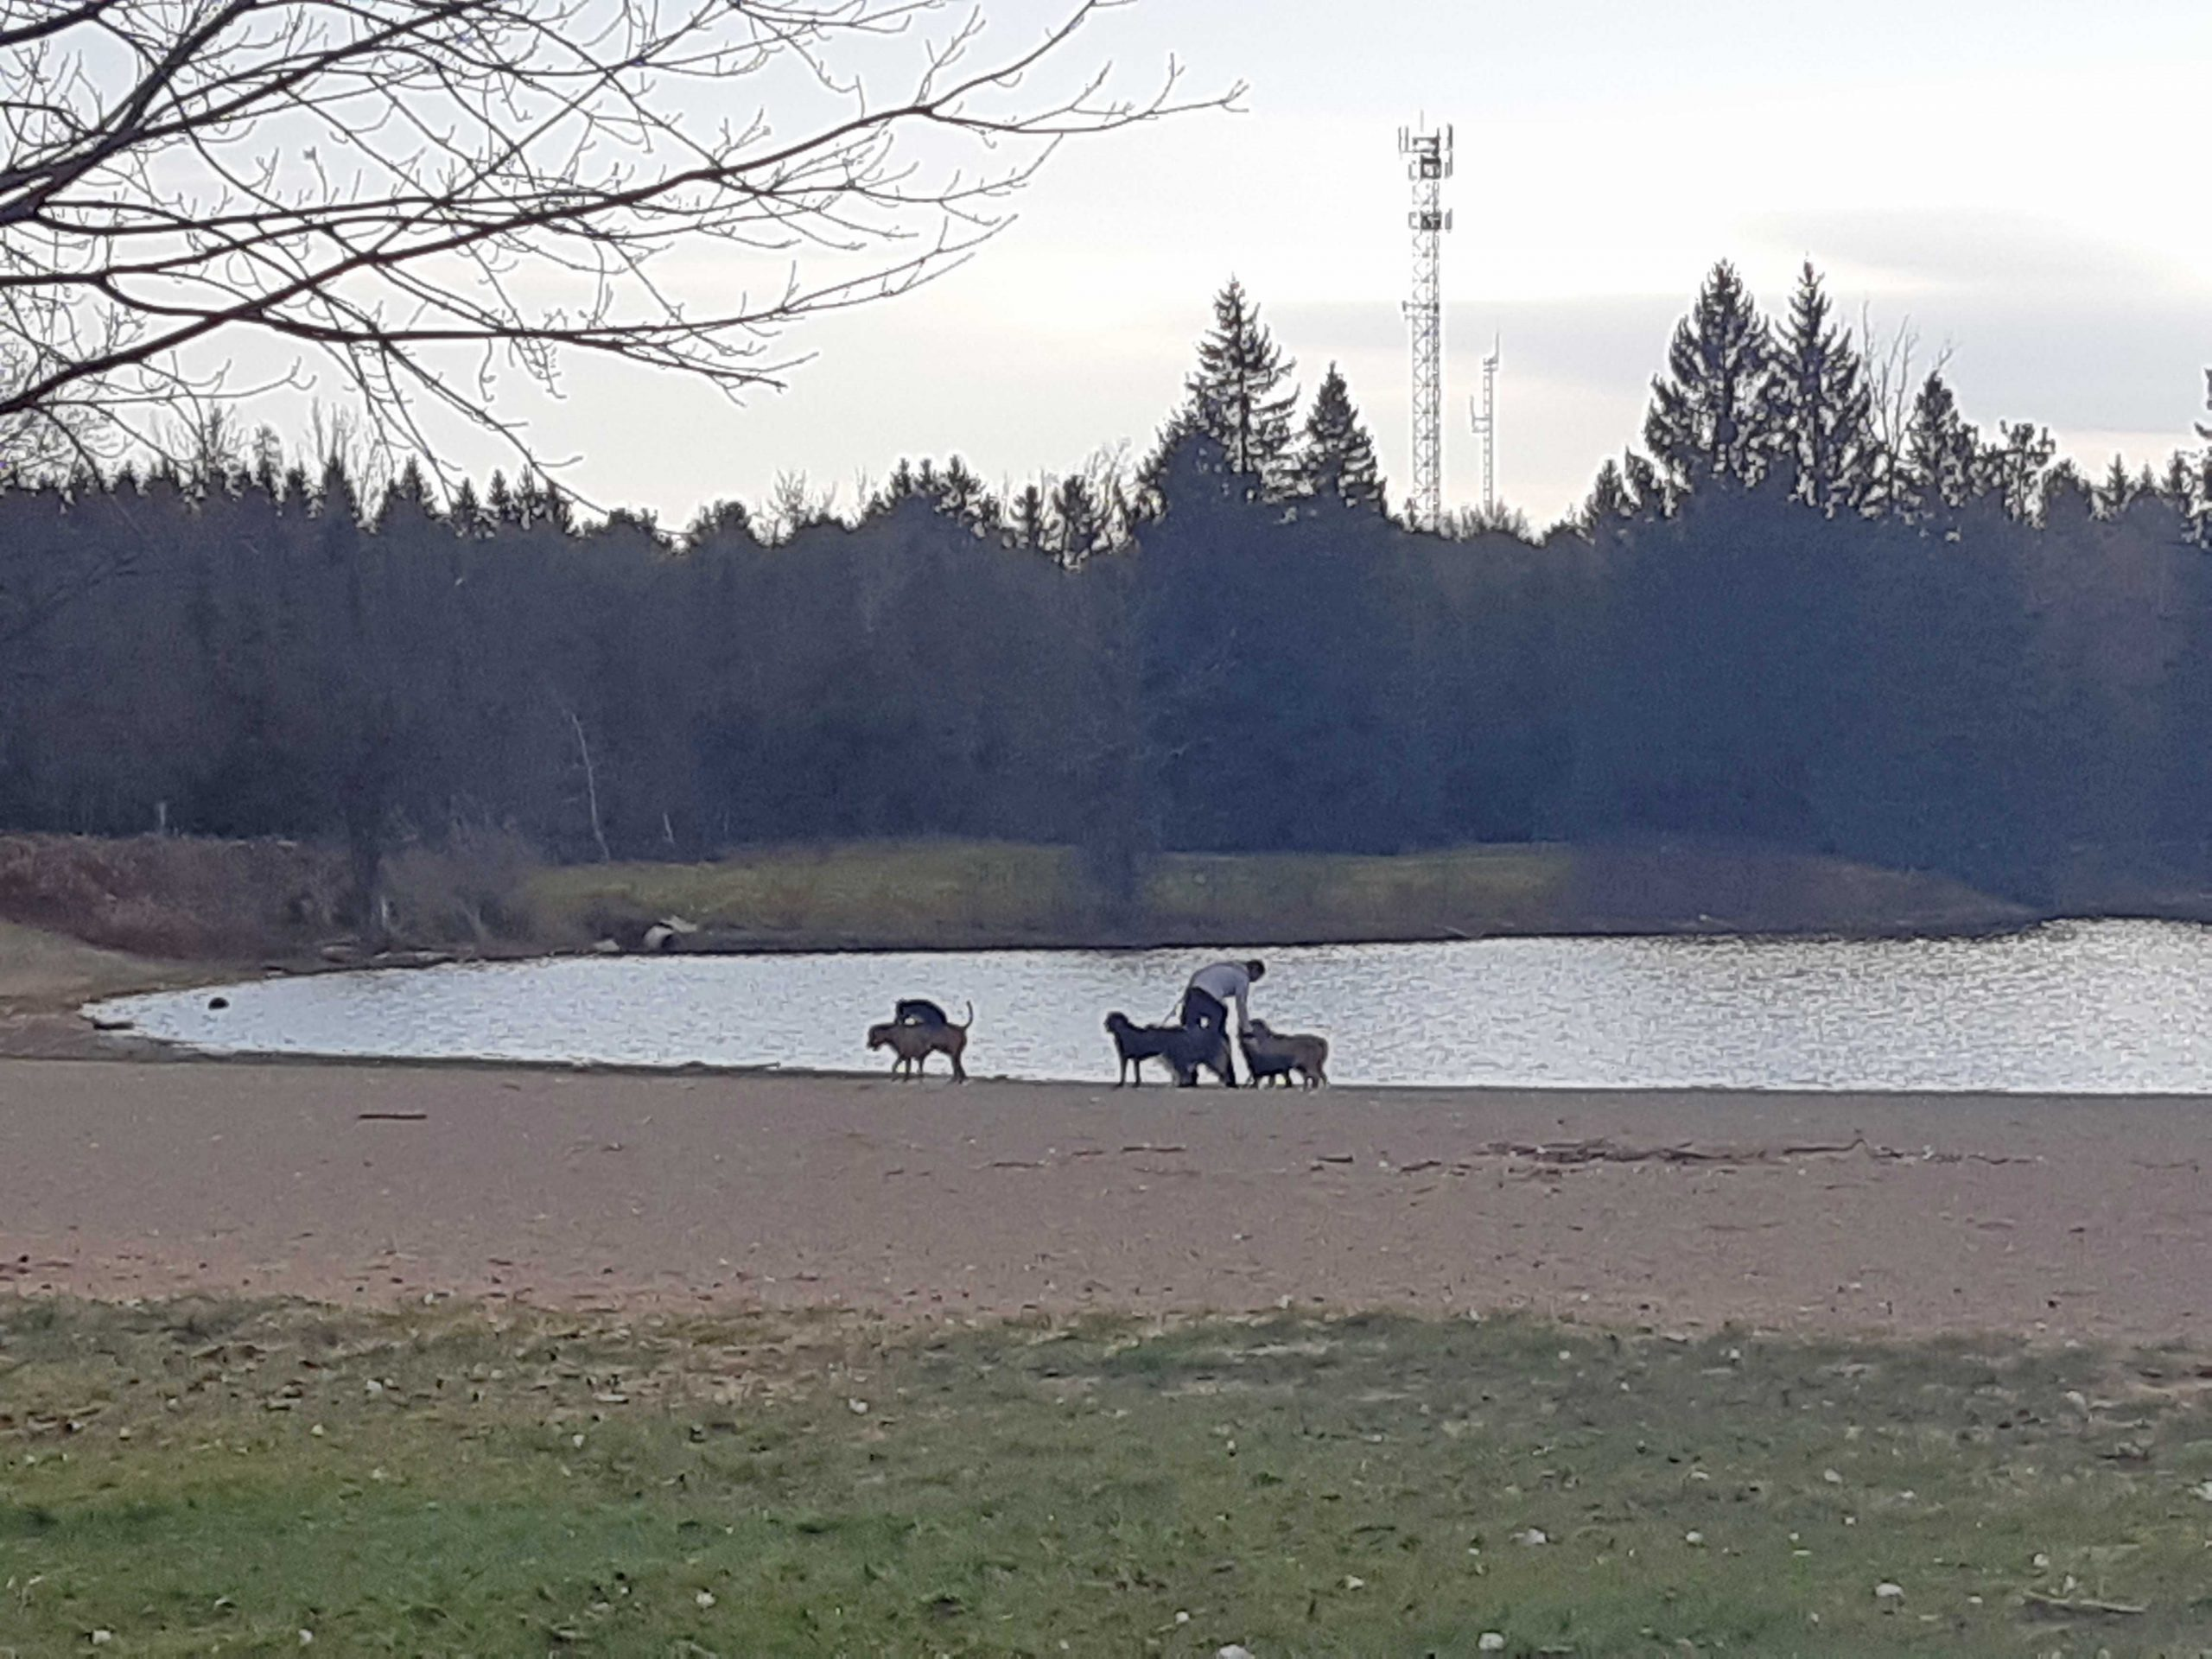 Dog walker with dogs by a pond